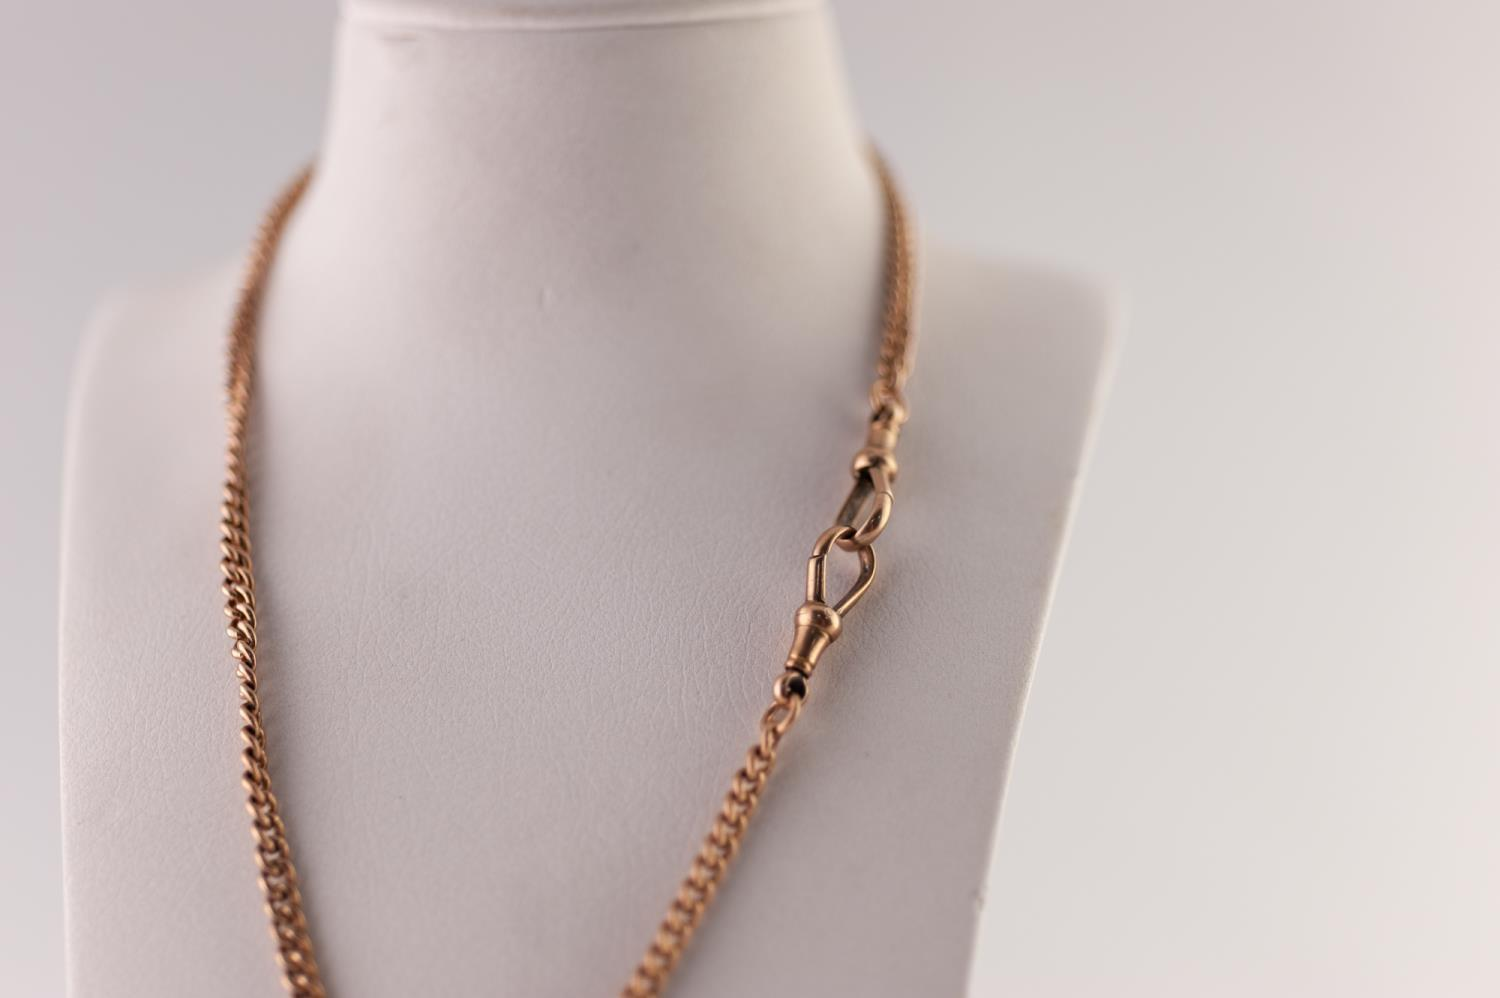 Lot 218 - 9ct GOLD CURB LINK ALBERT CHAIN, with T-bar and clips, length 38cm, 16.7g